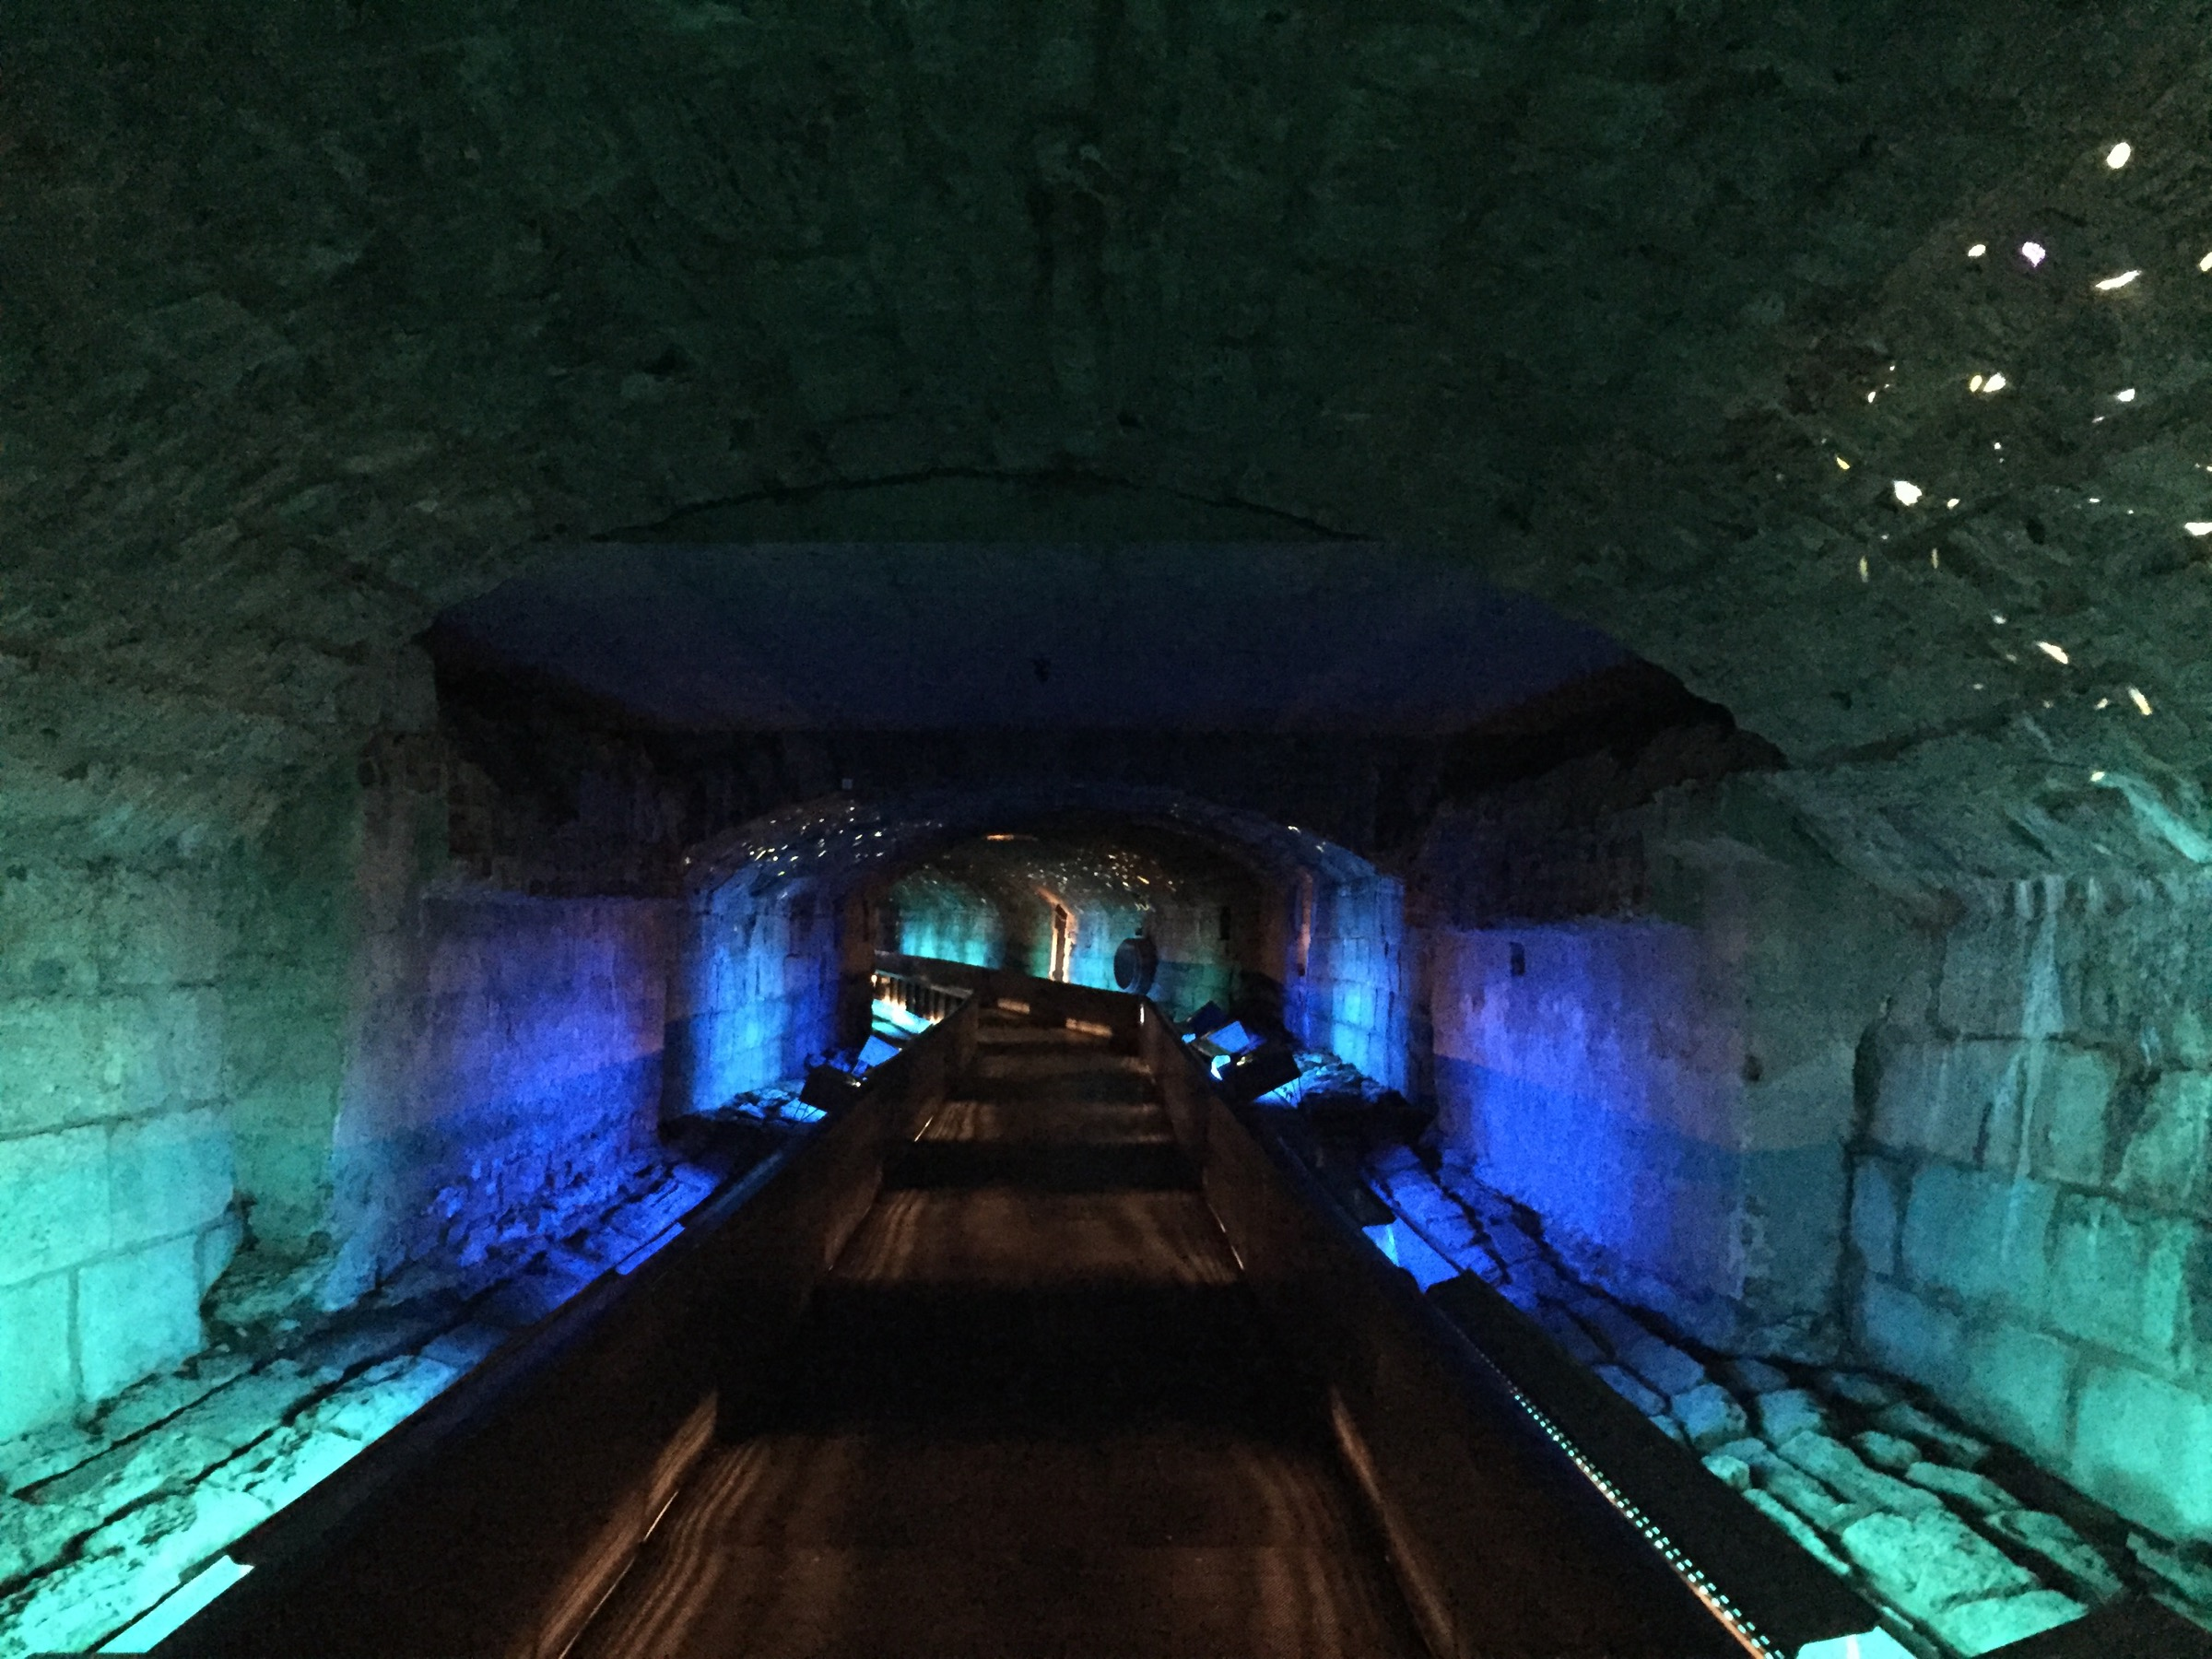 Once an underground channel for Montreal's polluted Little River, this tunnel is now a reminder of the corridors humans have created and destroyed as civilizations grew. Photograph by Hillary Rosner